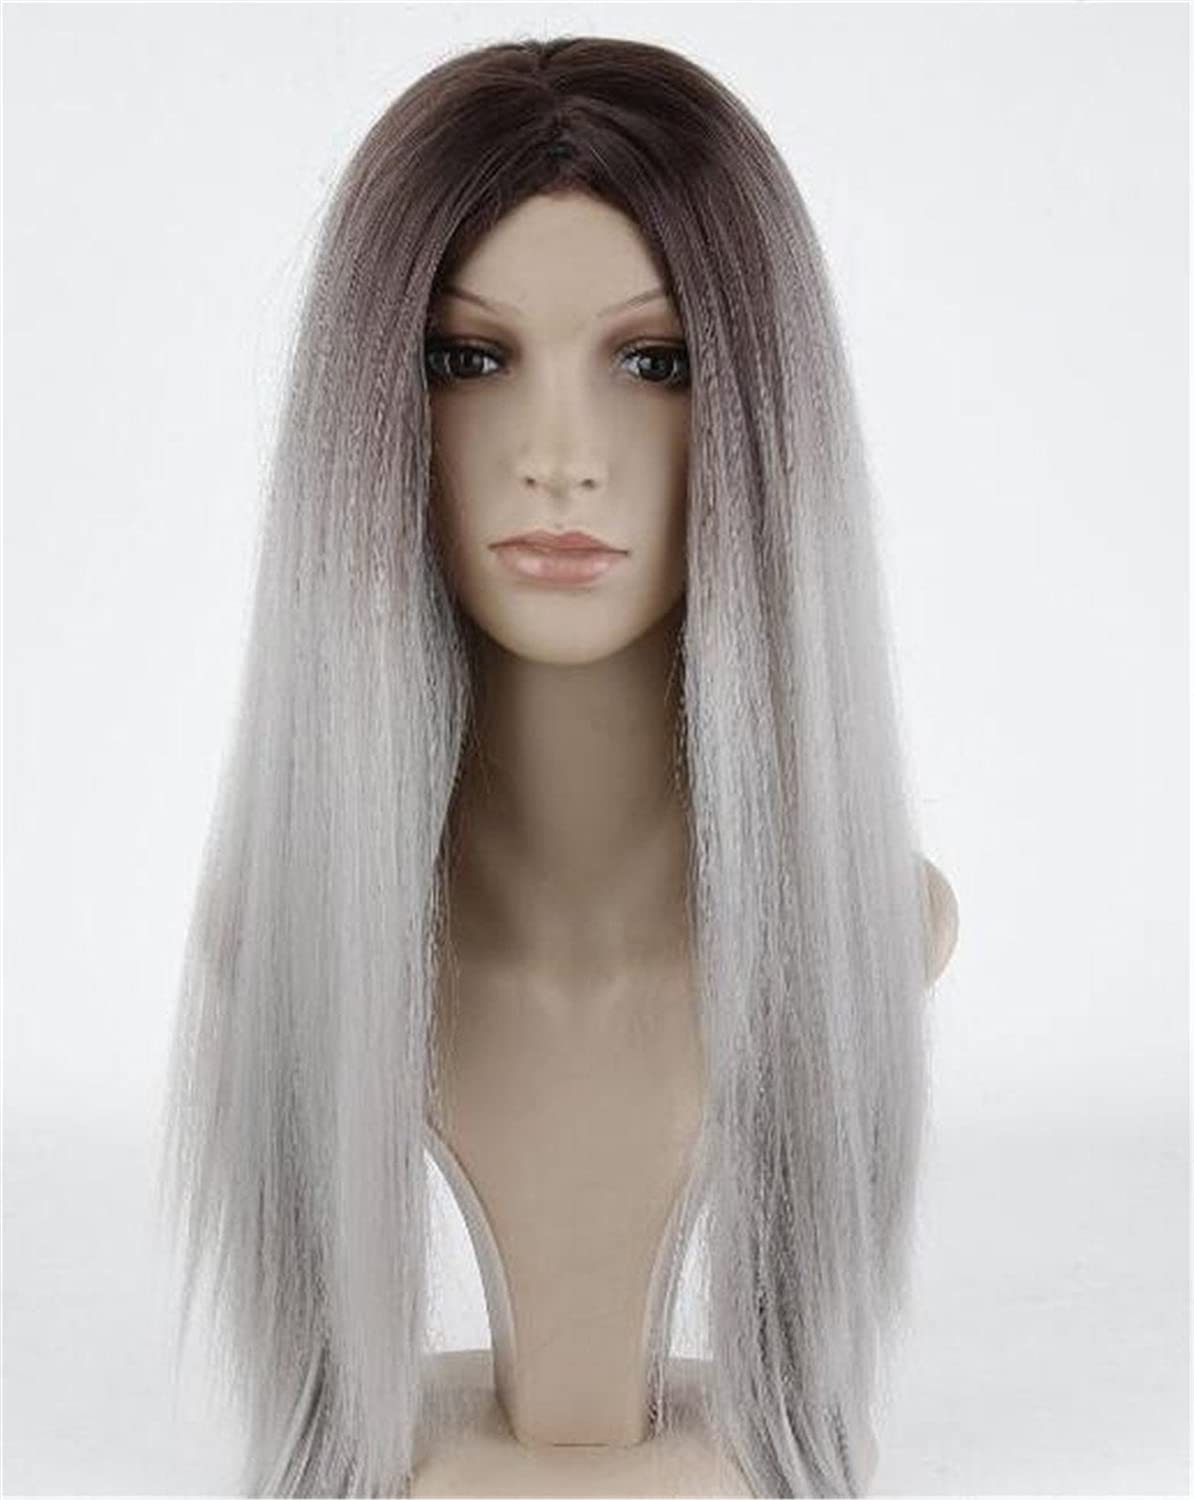 Amazon.com: Worldflying®long Straight Hair Black to Grey Ombre Wig Heat Resistant Fiber Synthetic Cosplay Wigs Peruca Pelucas: Beauty